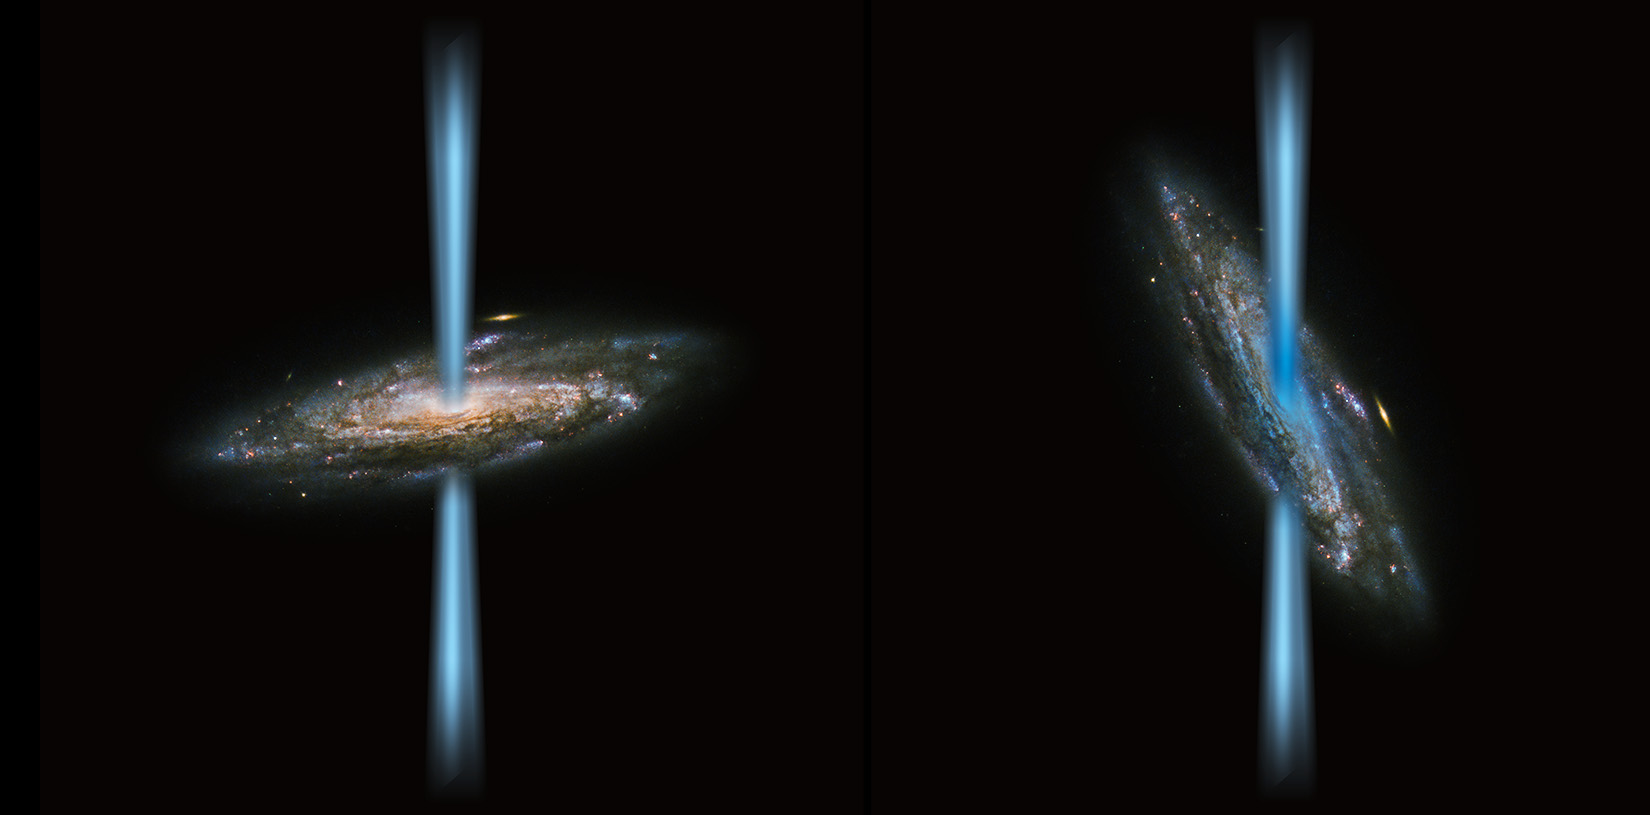 Artist's concept of a jet from an active black hole that is perpendicular to the host galaxy (left) compared to a jet that is launching directly into the galaxy (right) illustrated over an image of a spiral galaxy from the Hubble Space Telescope. SOFIA found a strange black hole with jets that are irradiating the host galaxy, called HE 1353-1917. The galaxy has 10 times more ionized carbon than its stars could produce. The gas, illustrated in blue in the right image, is concentrated near the galaxy's center, which indicates that the intense radiation from the black hole's jet is the source of the excess gas. This contradicts the long-held assumption that ionized carbon is a good indicator of newborn stars, and forces scientists to re-evaluate the effect black holes have on galaxies. Image credit: ESA/Hubble&NASA and NASA/SOFIA/L. Proudfit